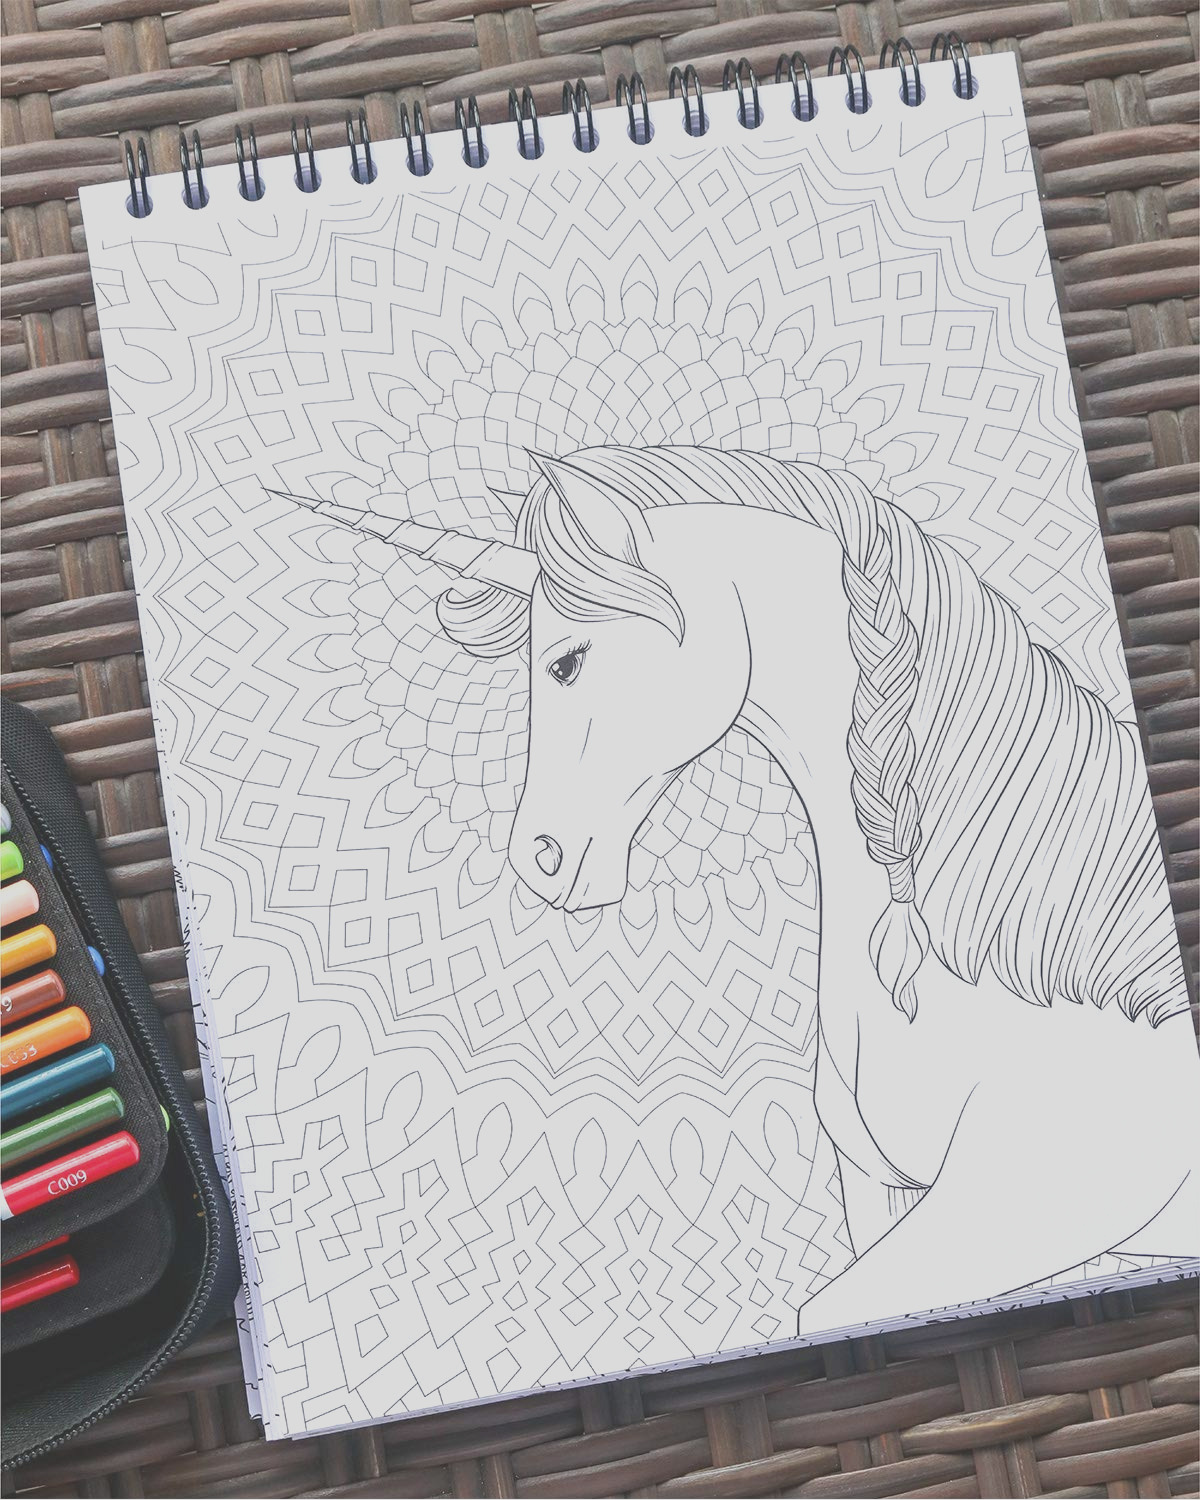 colorit colorful unicorns adult coloring book 50 single sided pages thick smooth paper lay flat hardback covers spiral bound usa printed hand drawn unicorn coloring pages